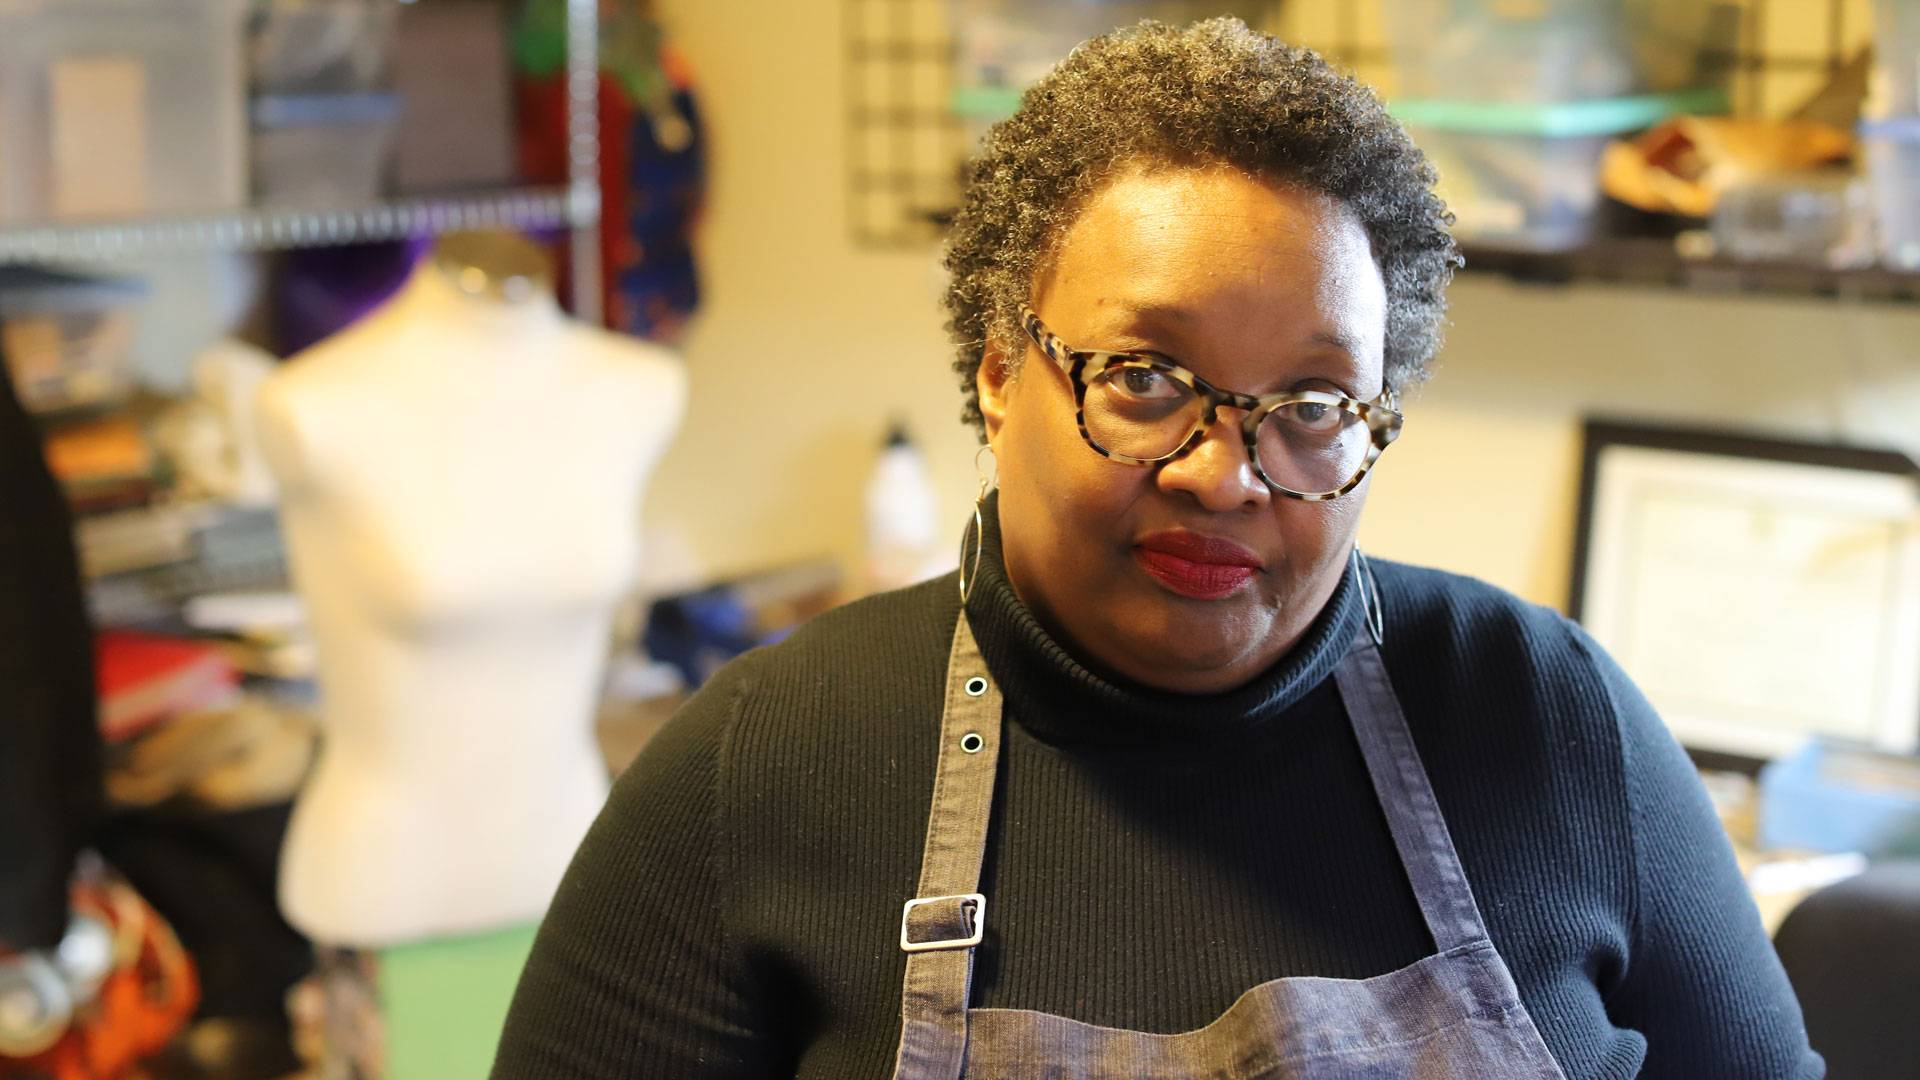 Oakland metalsmith Karen Smith is launching a new nonprofit, We Wield the Hammer, to bring metalwork to other black women and girls. Sam Lefebvre/KQED